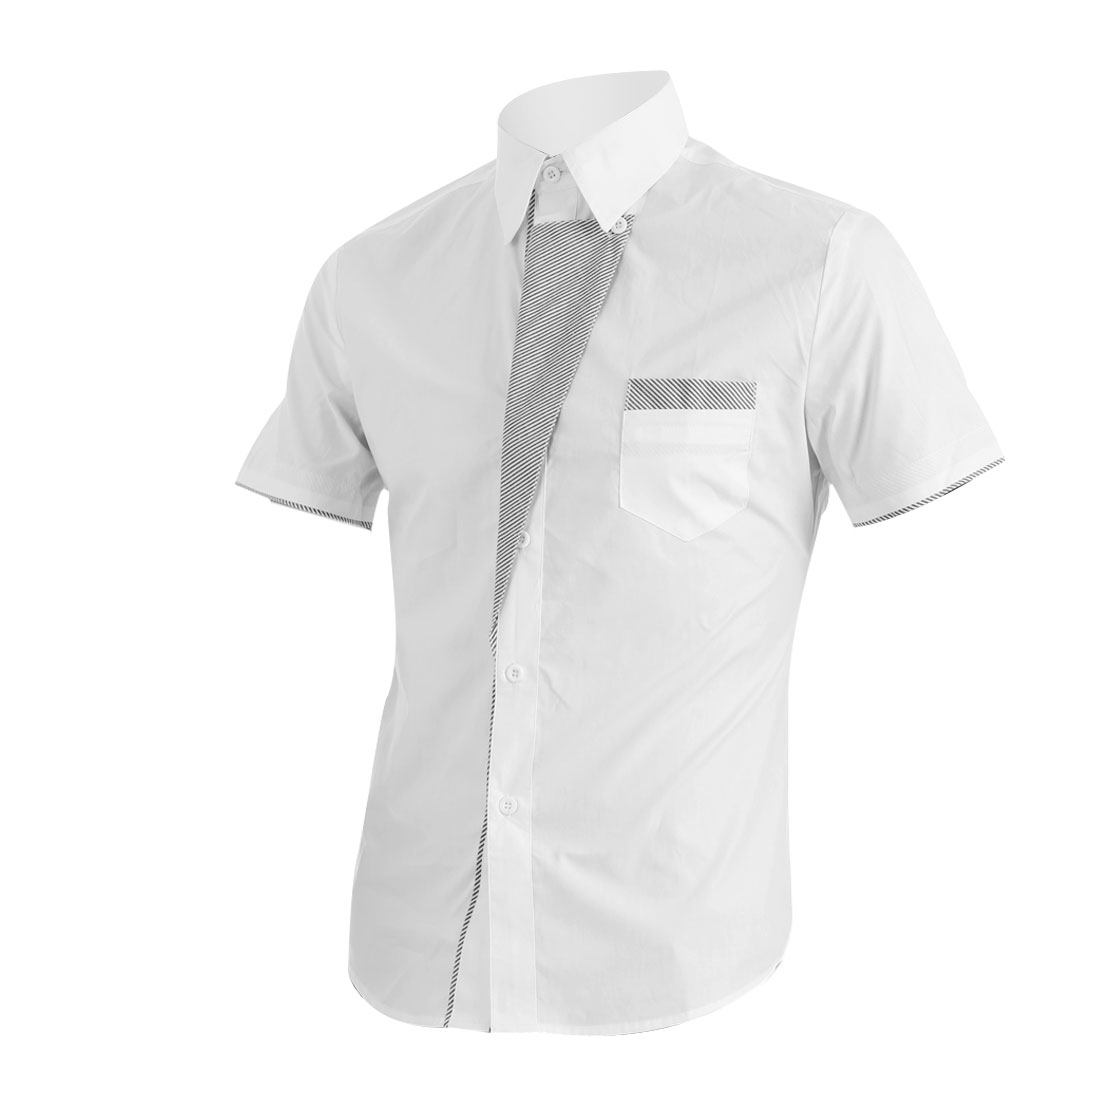 Men Point Collar Button Up Short Sleeve Stripes Decor Shirt White M